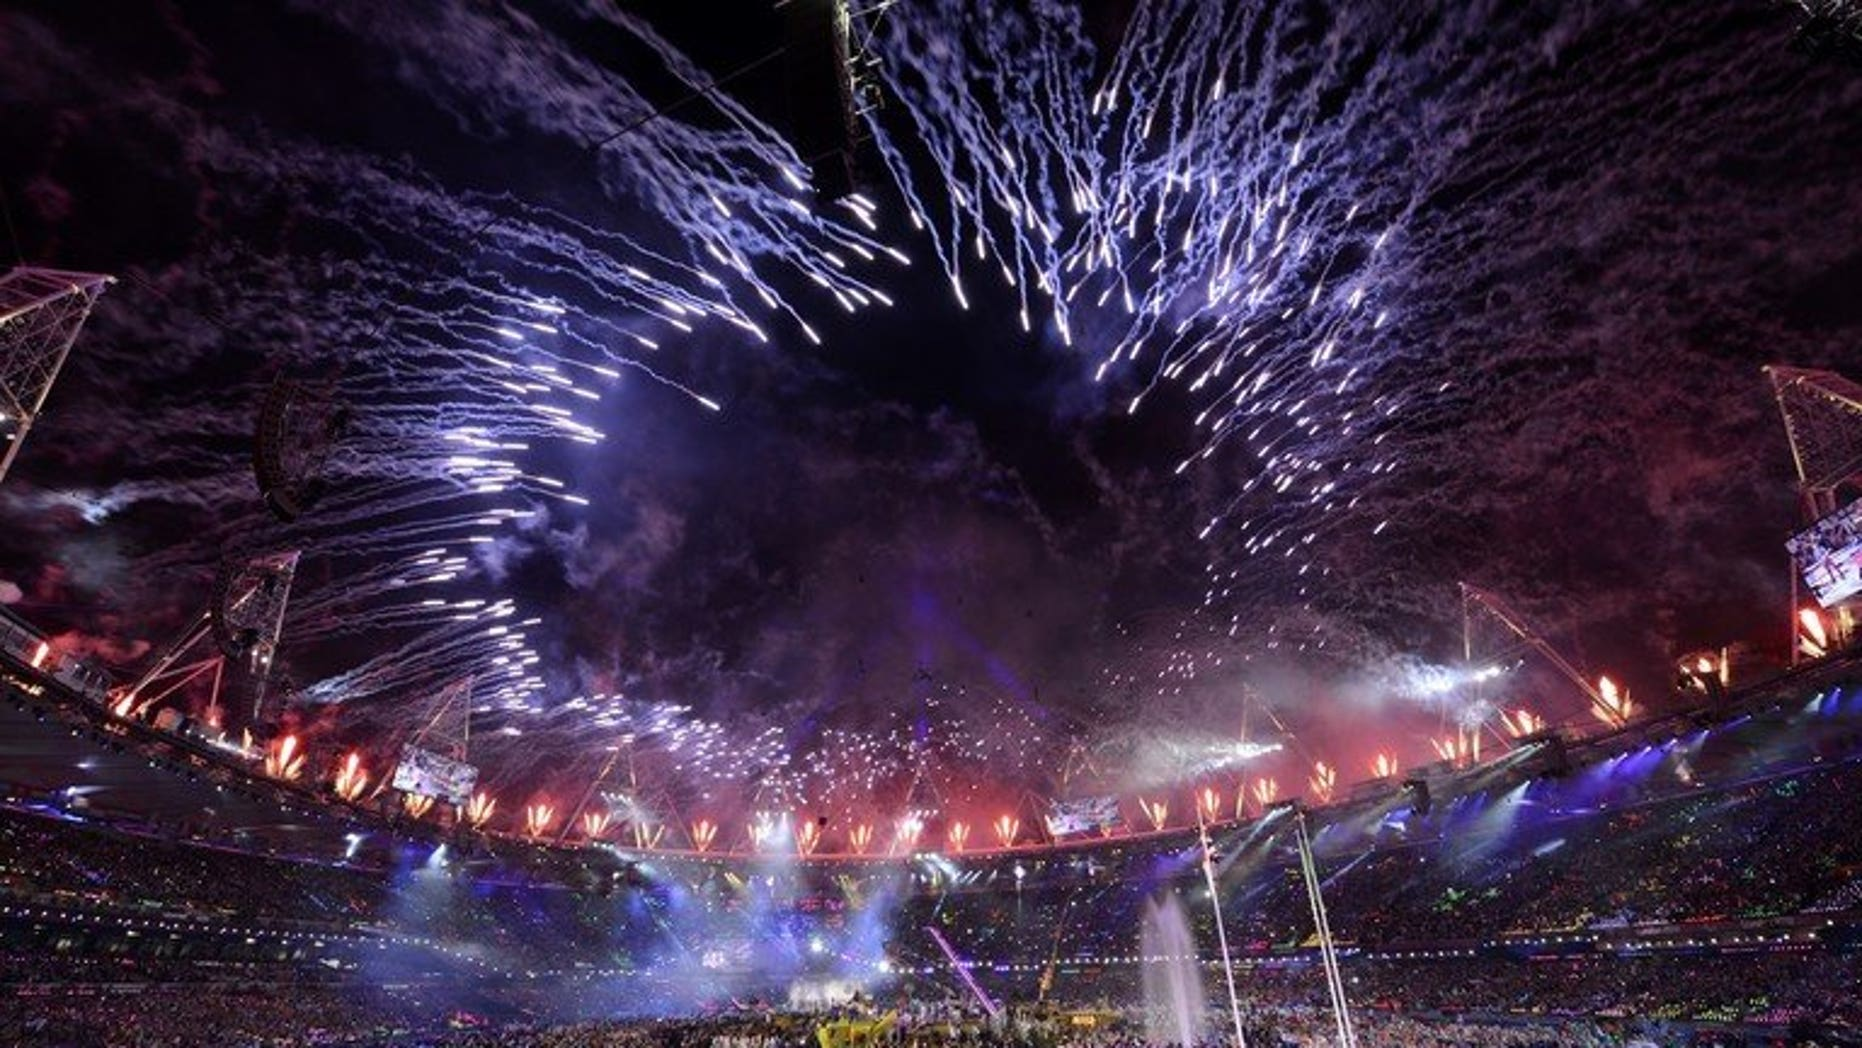 Fireworks light up the sky above the Olympic Stadium during the closing ceremony of the London 2012 Paralympic Games, on September 9, 2012. The Olympic Games in London last year gave the British economy a boost worth $15 billion, the government said on Friday, a figure far higher than the cost of staging the event.